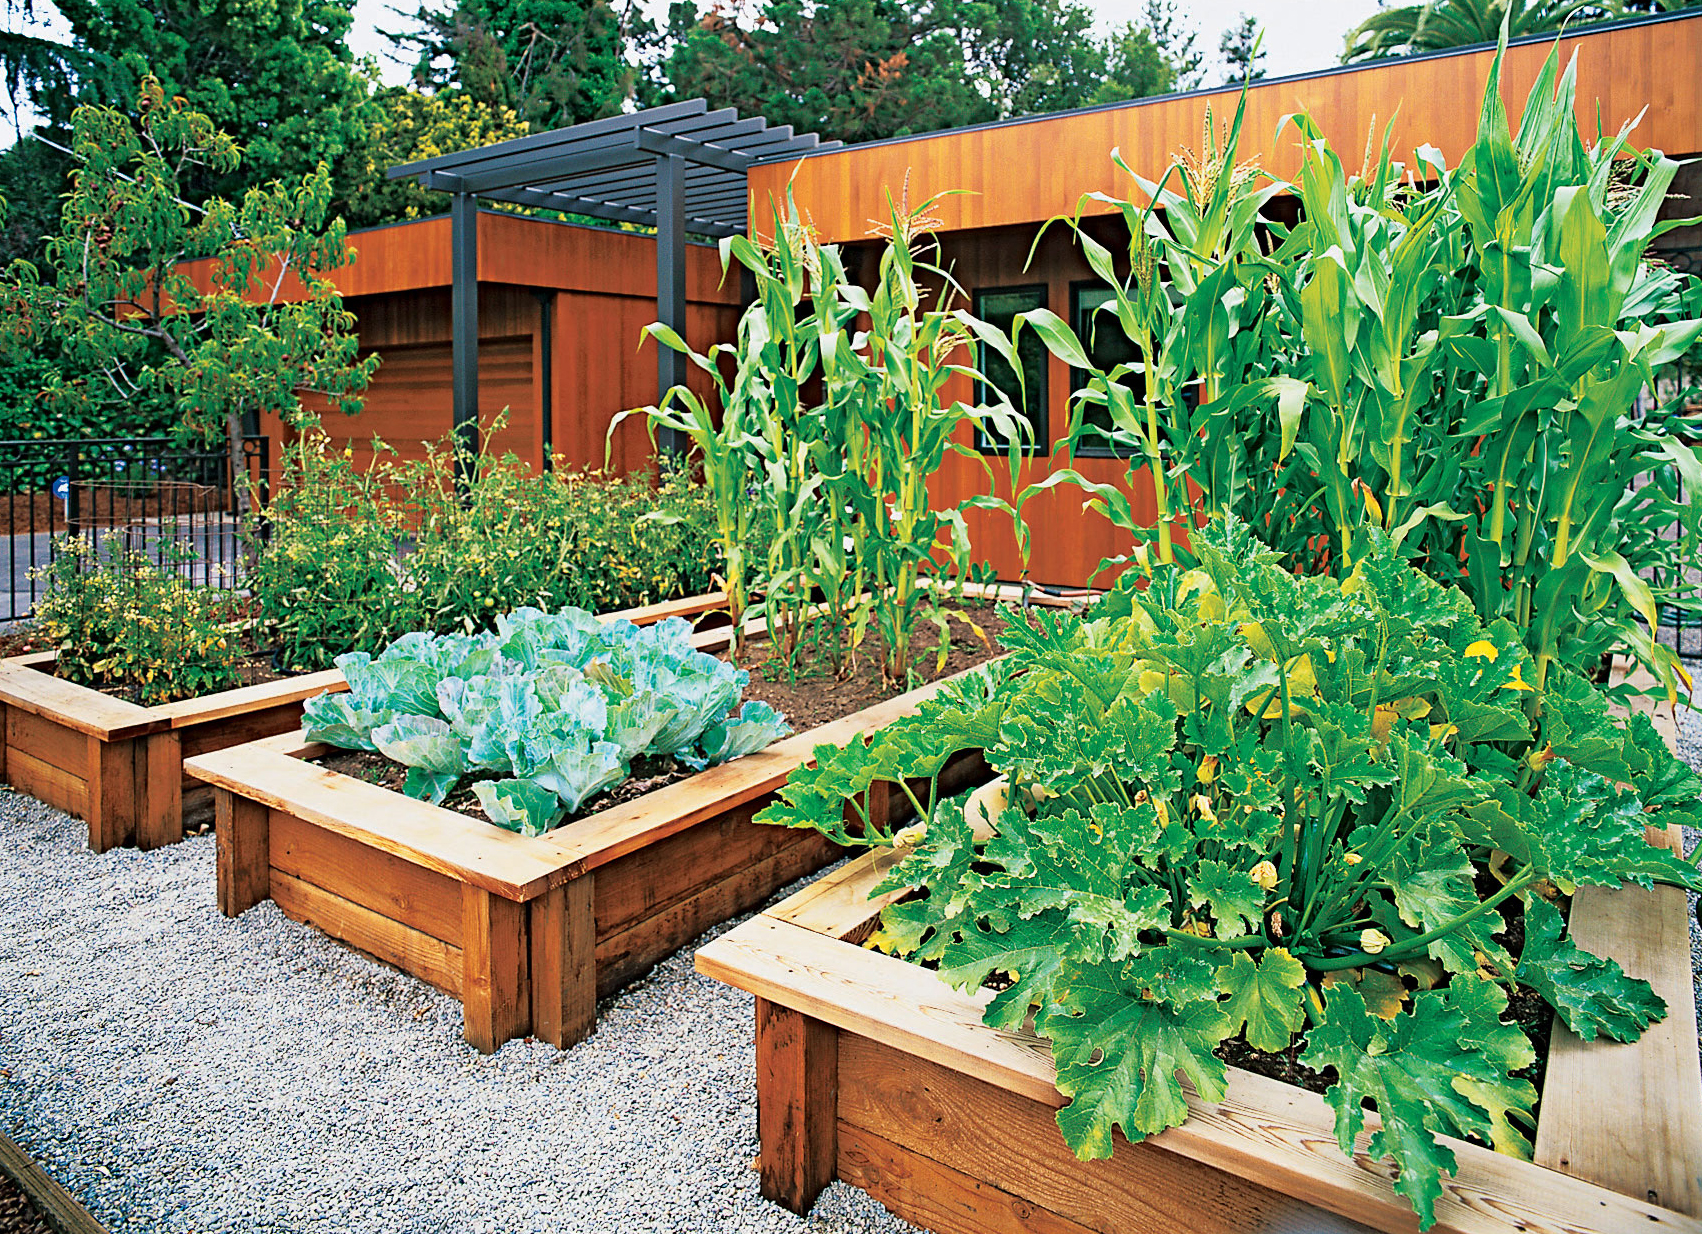 Grow Vegetables in the Front Yard